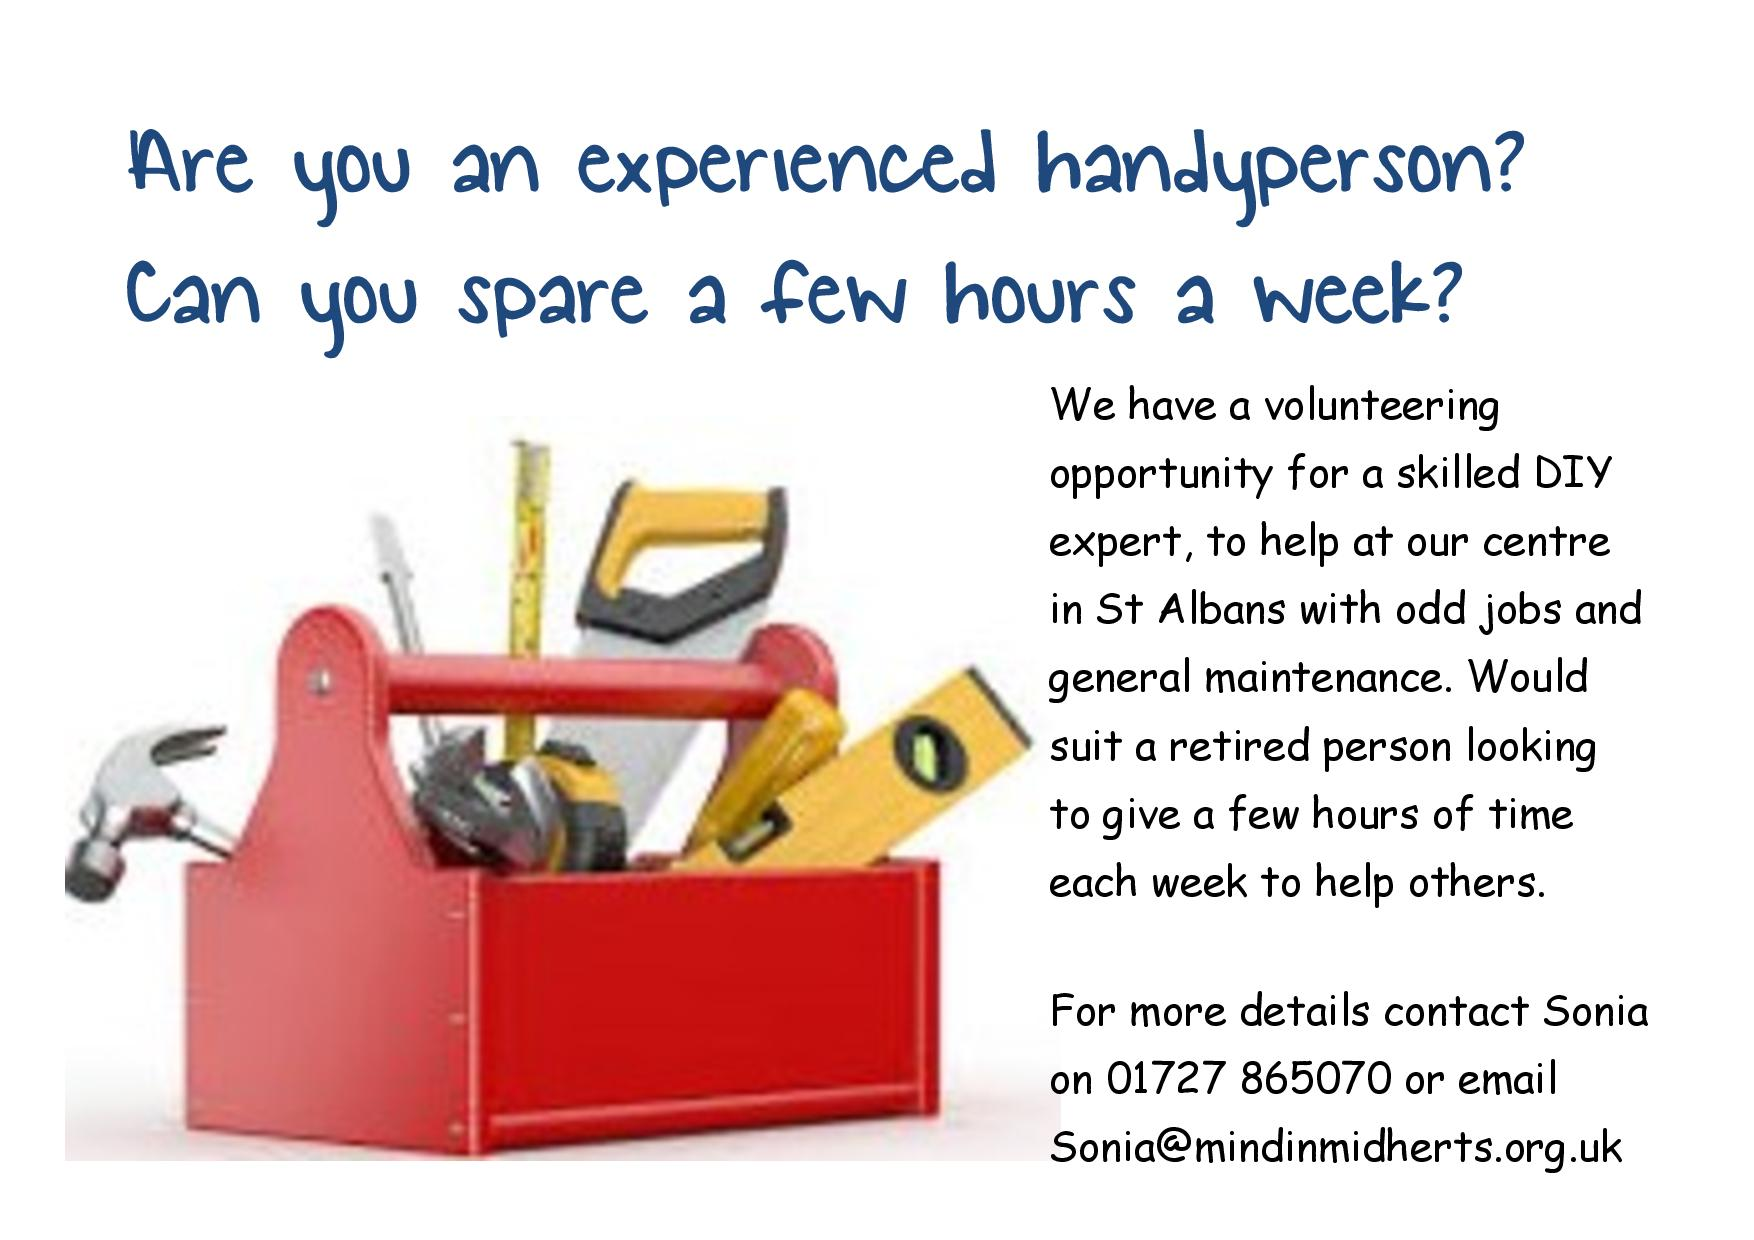 are you an experienced handyperson can you spare a few hours a week